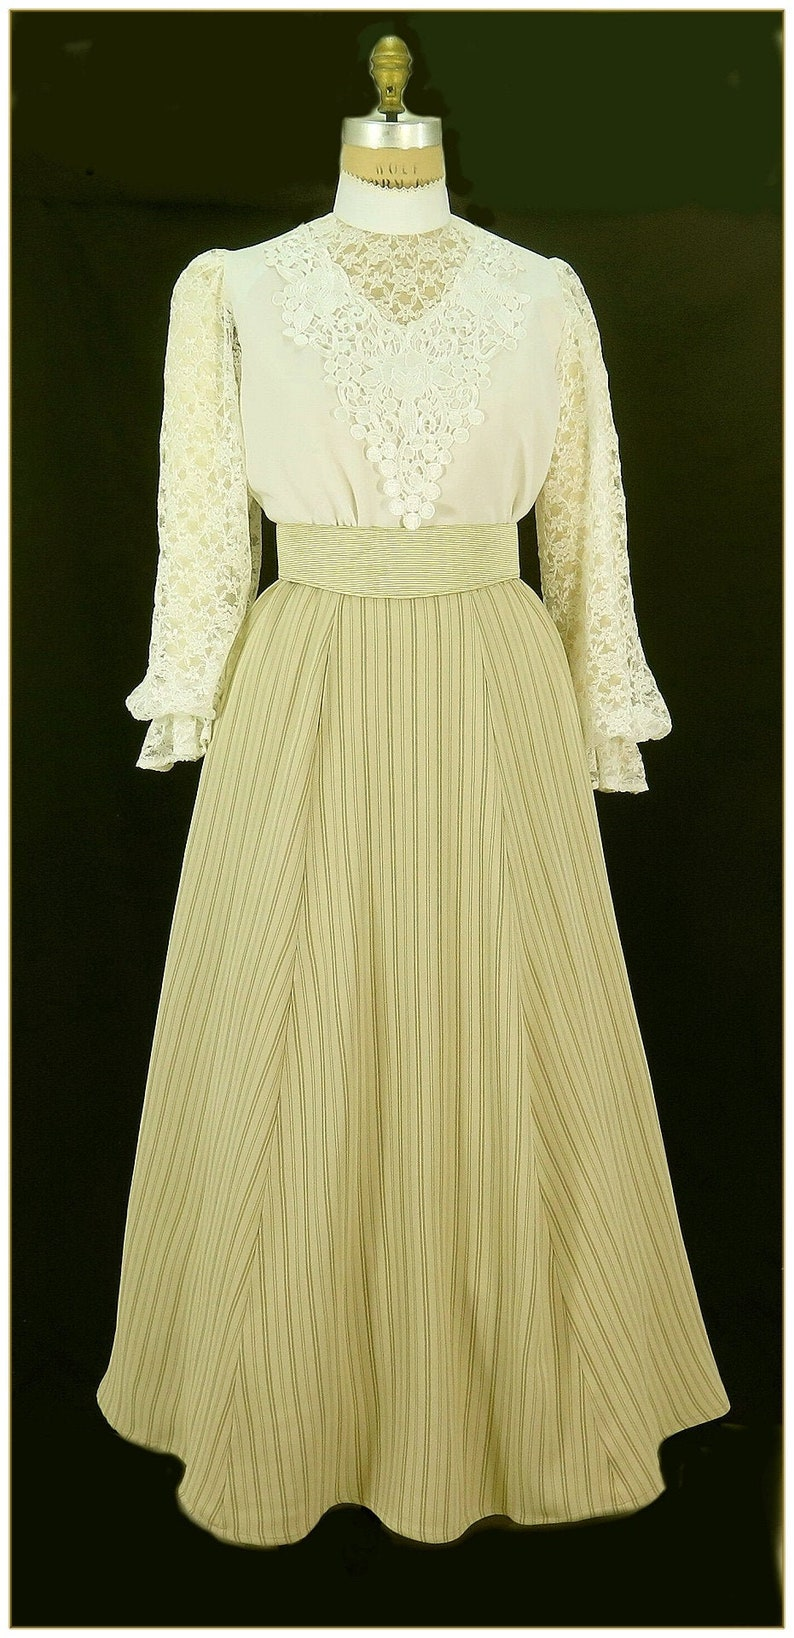 1890s-1900s Fashion, Clothing, Costumes Victorian Khaki Tan Stripe Skirt $65.00 AT vintagedancer.com